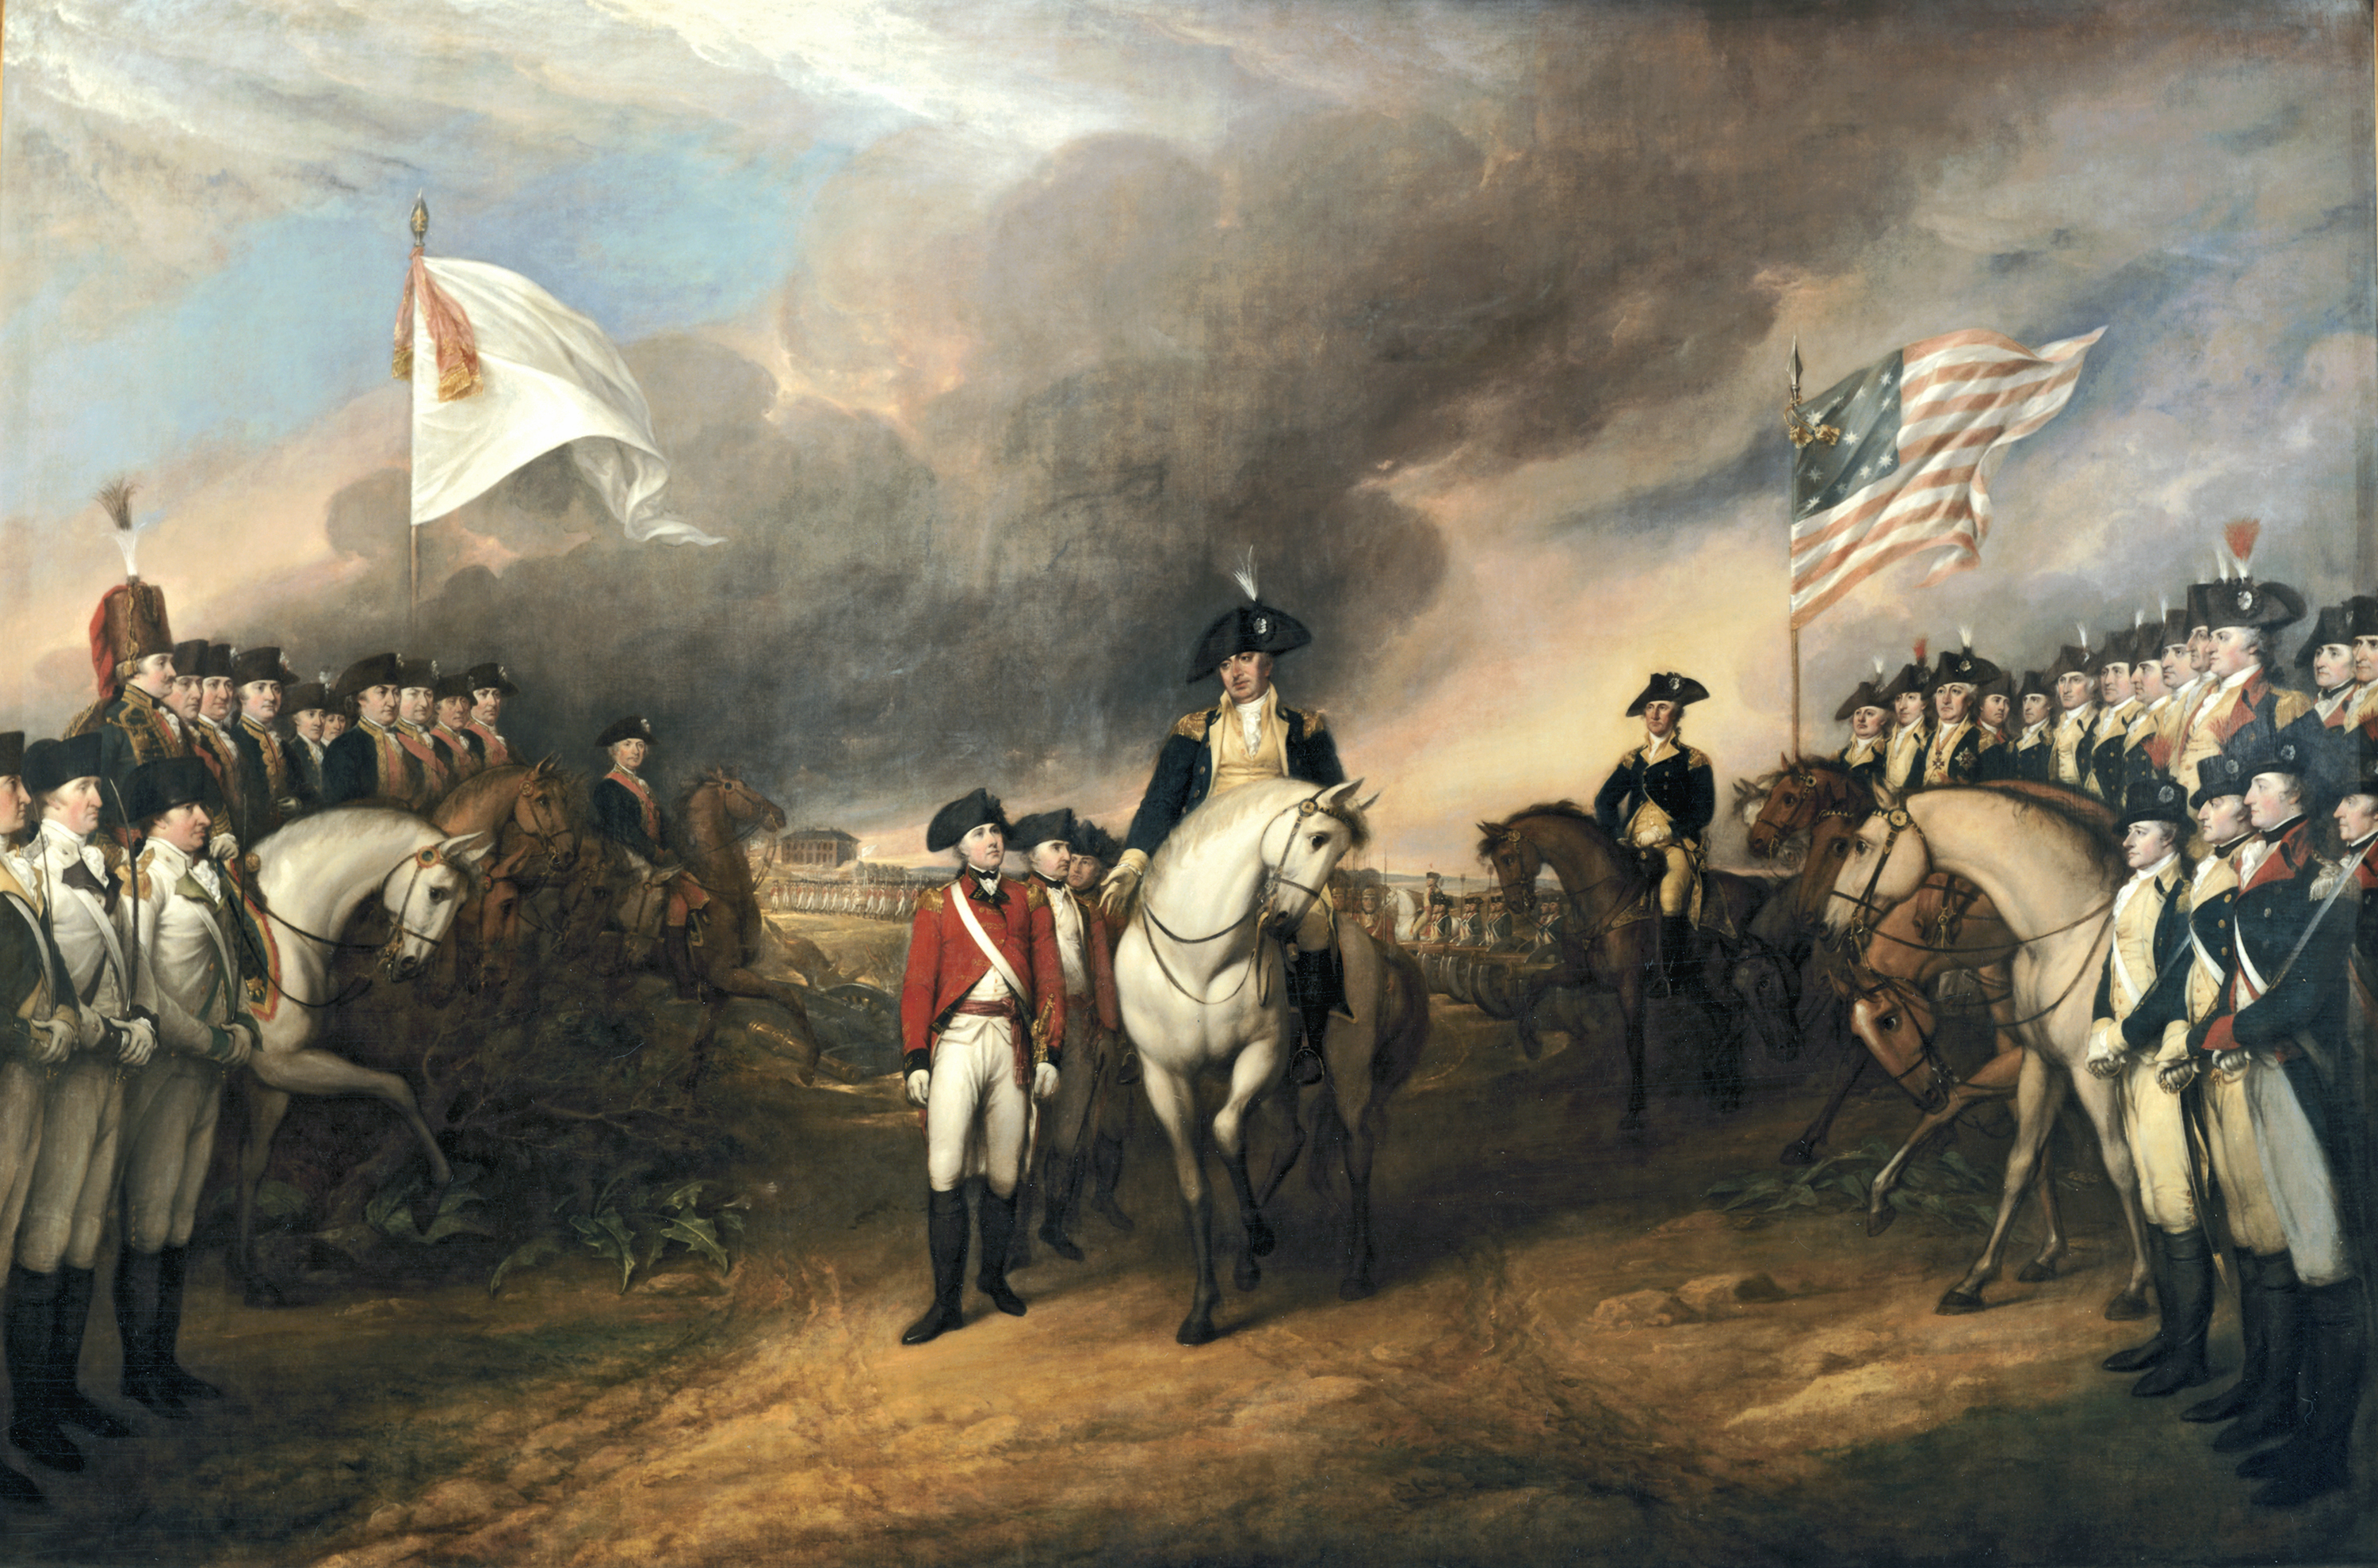 File:Surrender of Lord Cornwallis.jpg - Wikipedia